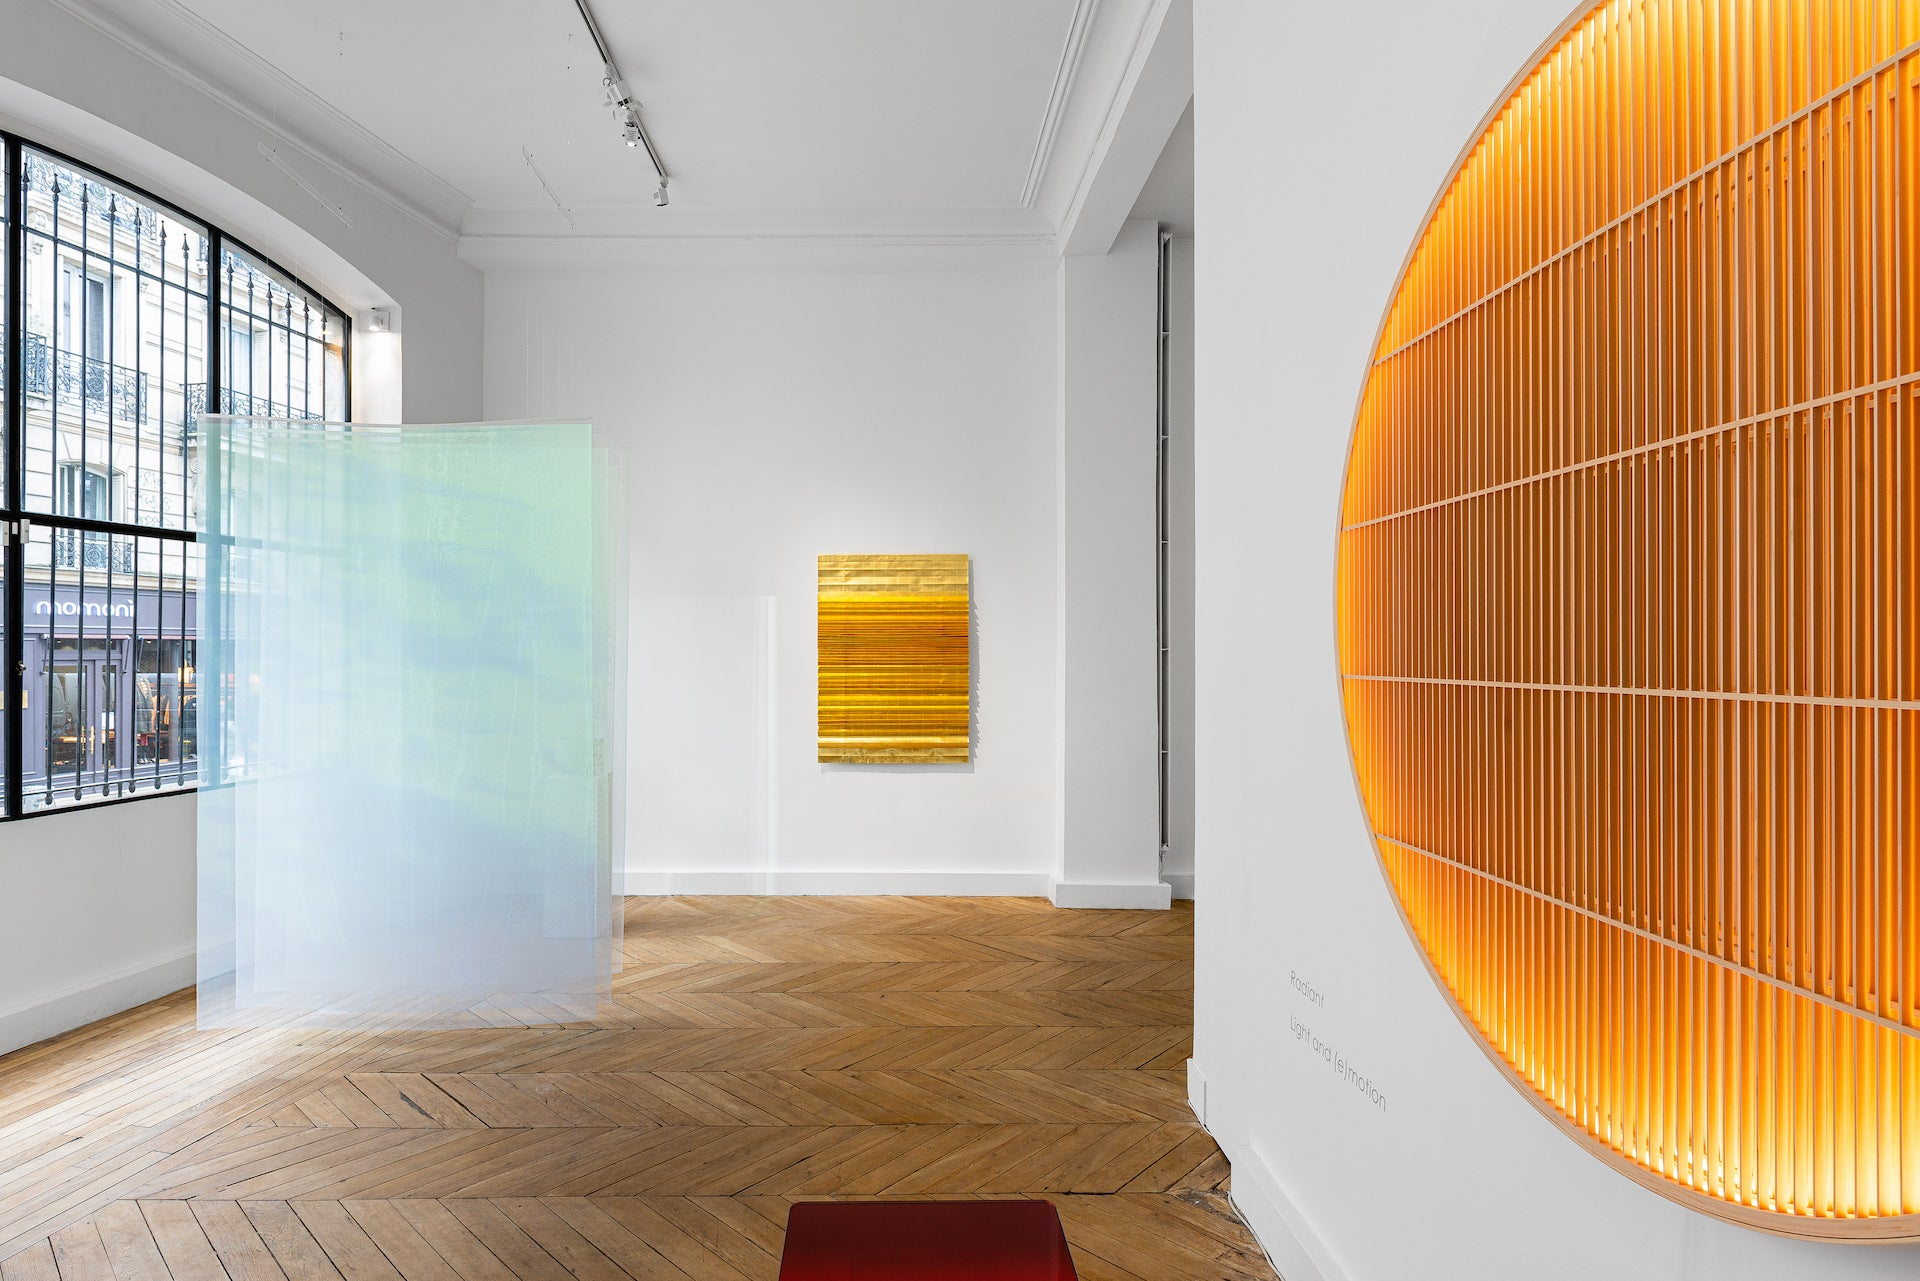 RADIANT: Light and (e)Motion at Galerie Maria Wettergren, featuring work by Grethe Søorensen, Astrid Krogh, and Ane Lykke. Photo © Gregory Copitet; Courtesy of Galerie Maria Wettergren